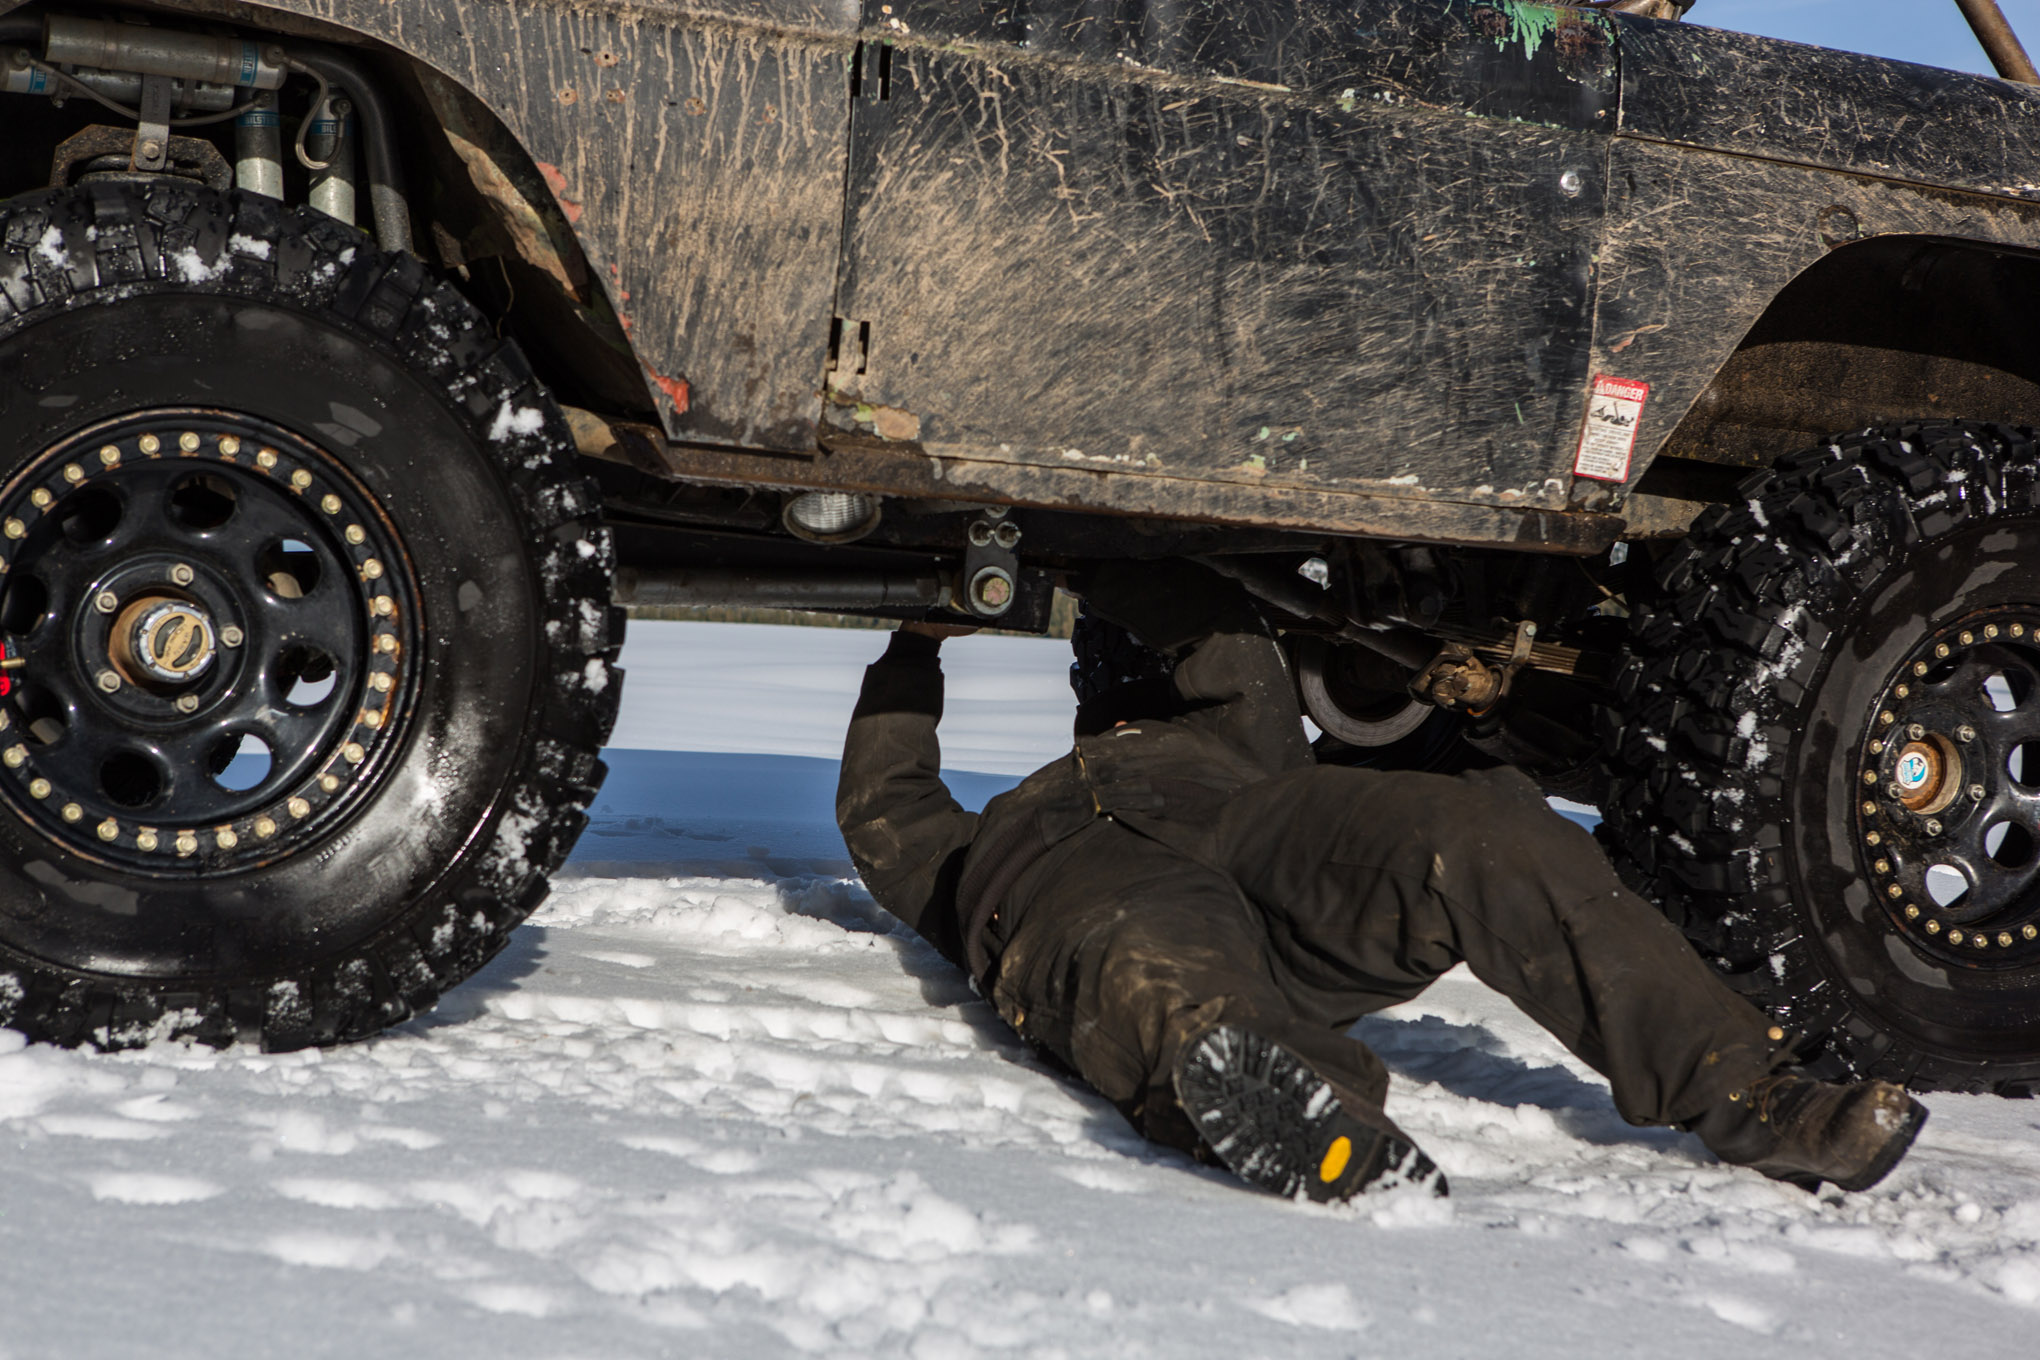 If you drive an open-topped rig, insulated Carhartts will be your new best friend. Grizzled snow-wheeling veteran Dave Perez says that he likes the bibs with an insulated jacket because they provide more options to tailor to the temperature than full coveralls do. He also recommends using a Utility Mat from Mac's Custom Tie Downs to lie down on in the snow.